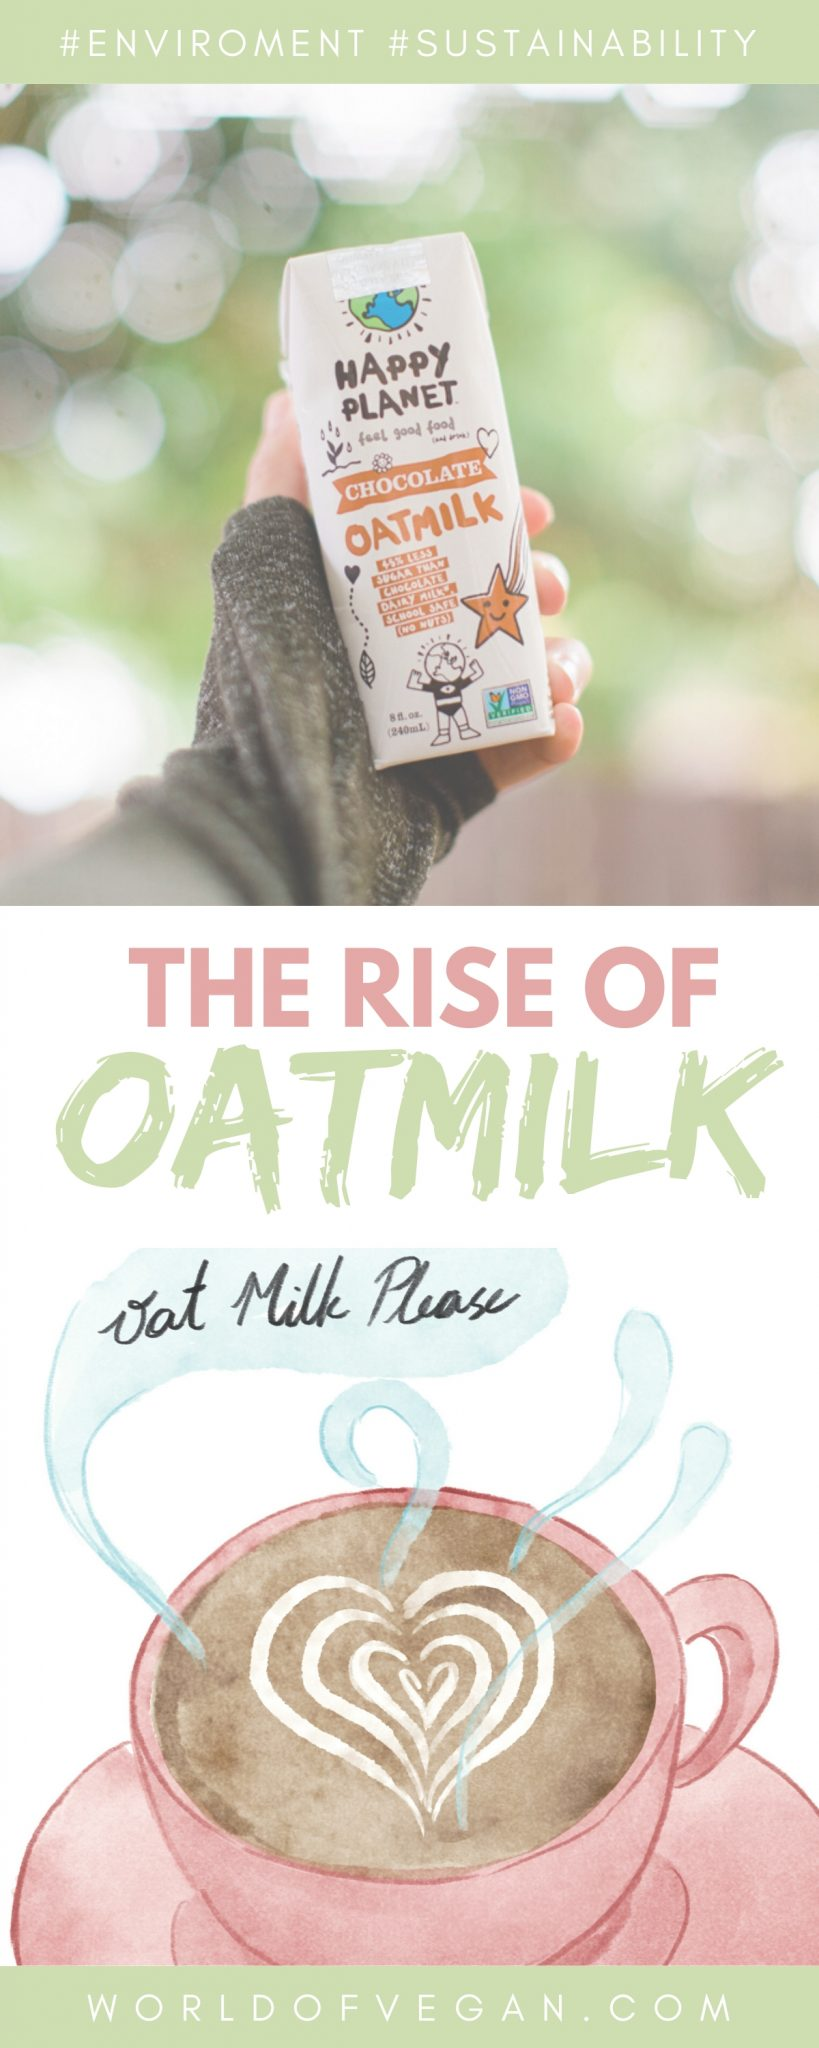 The Rise of Oatmilk Graphic